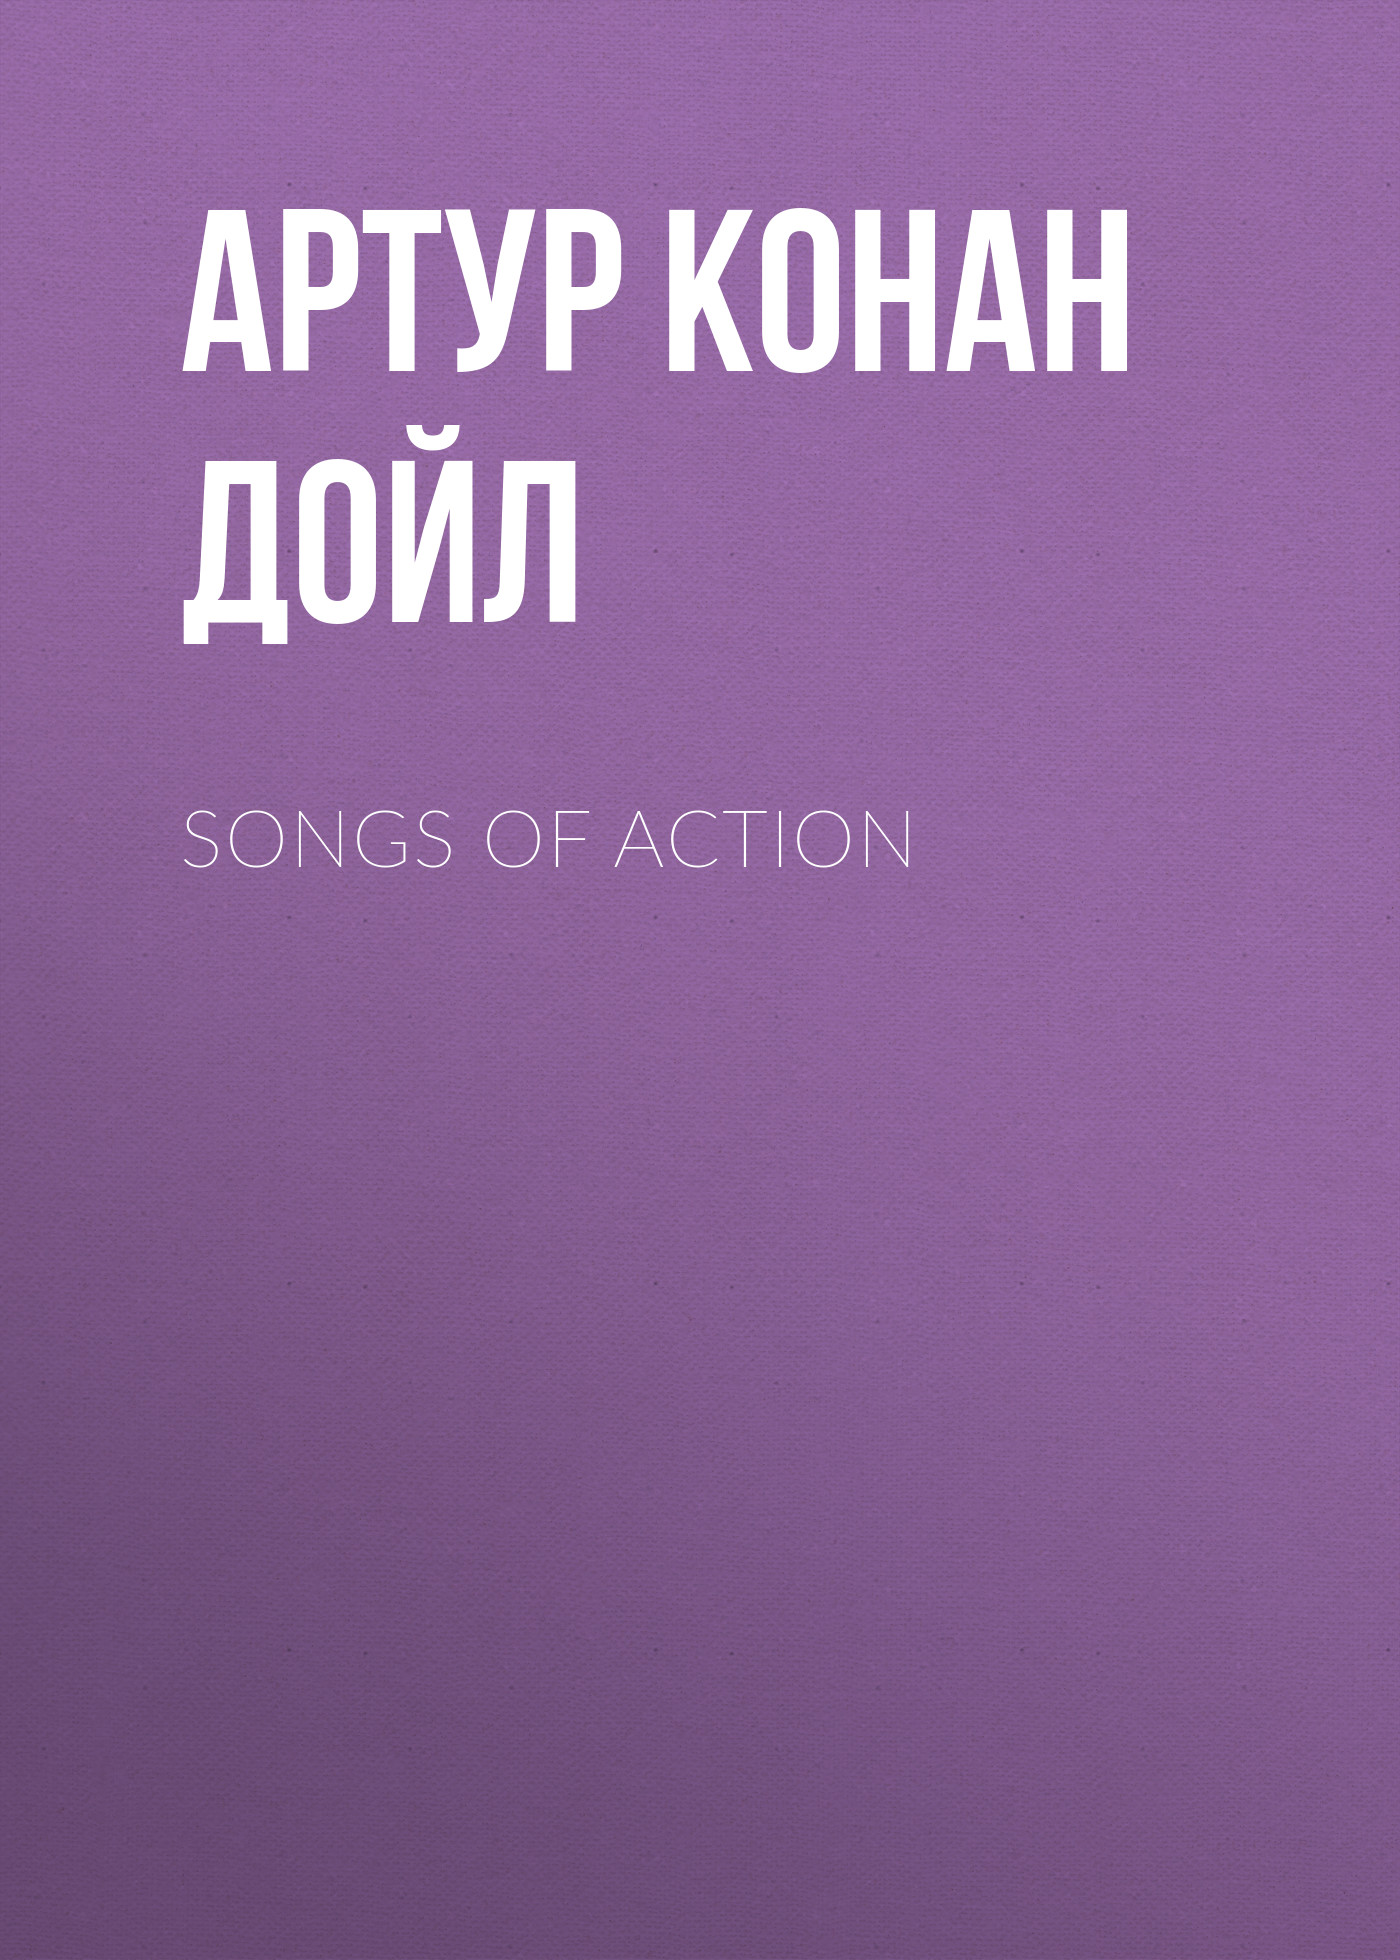 Артур Конан Дойл Songs of Action артур конан дойл the firm of girdlestone